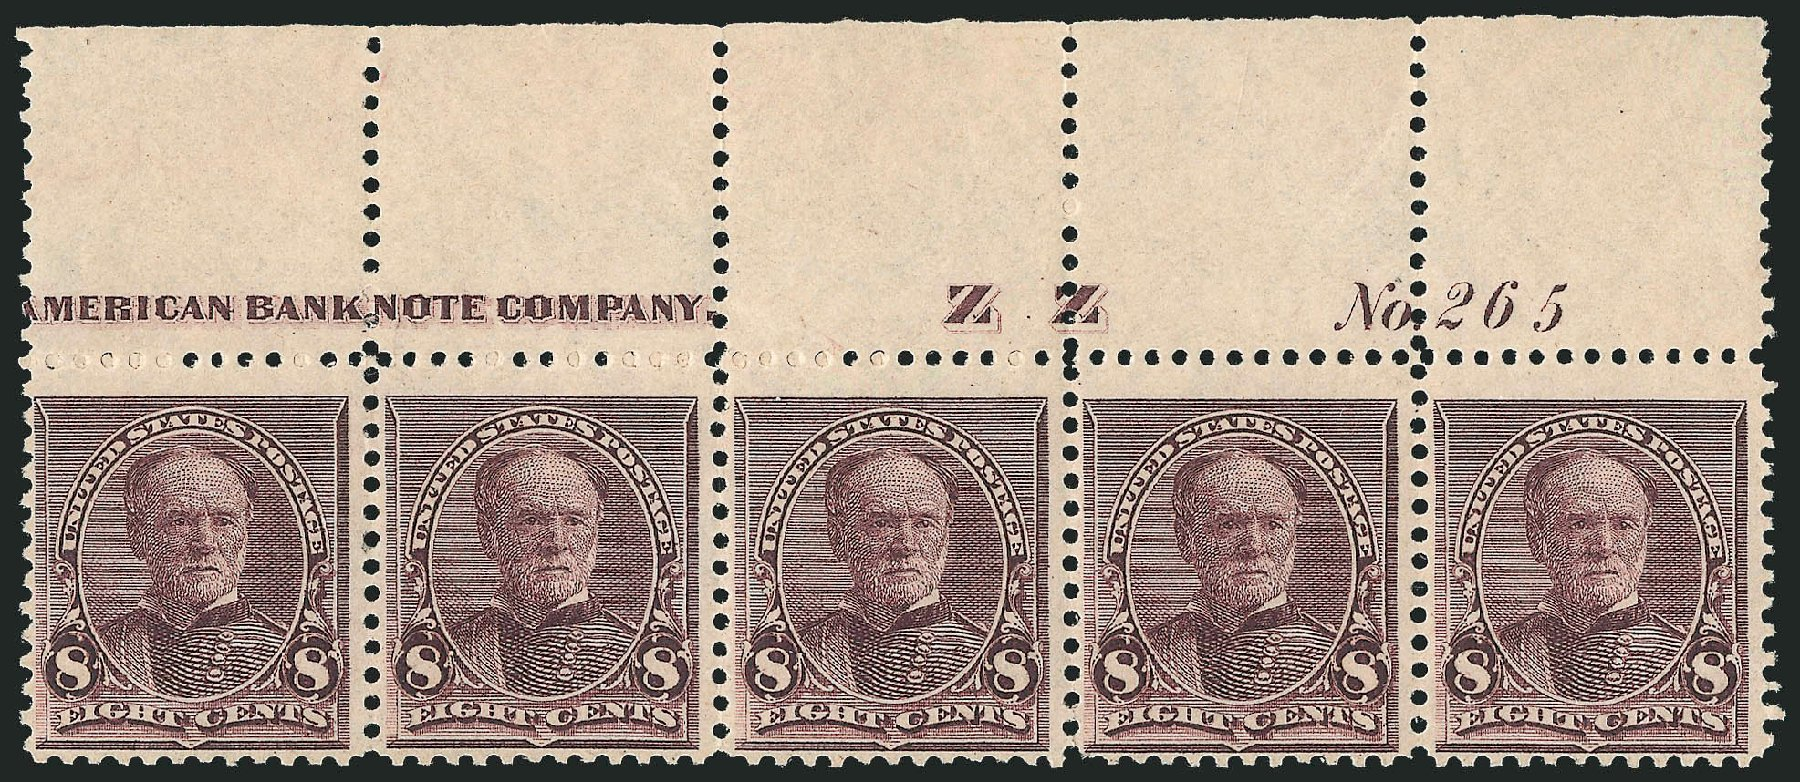 Value of US Stamp Scott Catalog # 225 - 1890 8c Sherman. Robert Siegel Auction Galleries, Oct 2014, Sale 1082, Lot 401